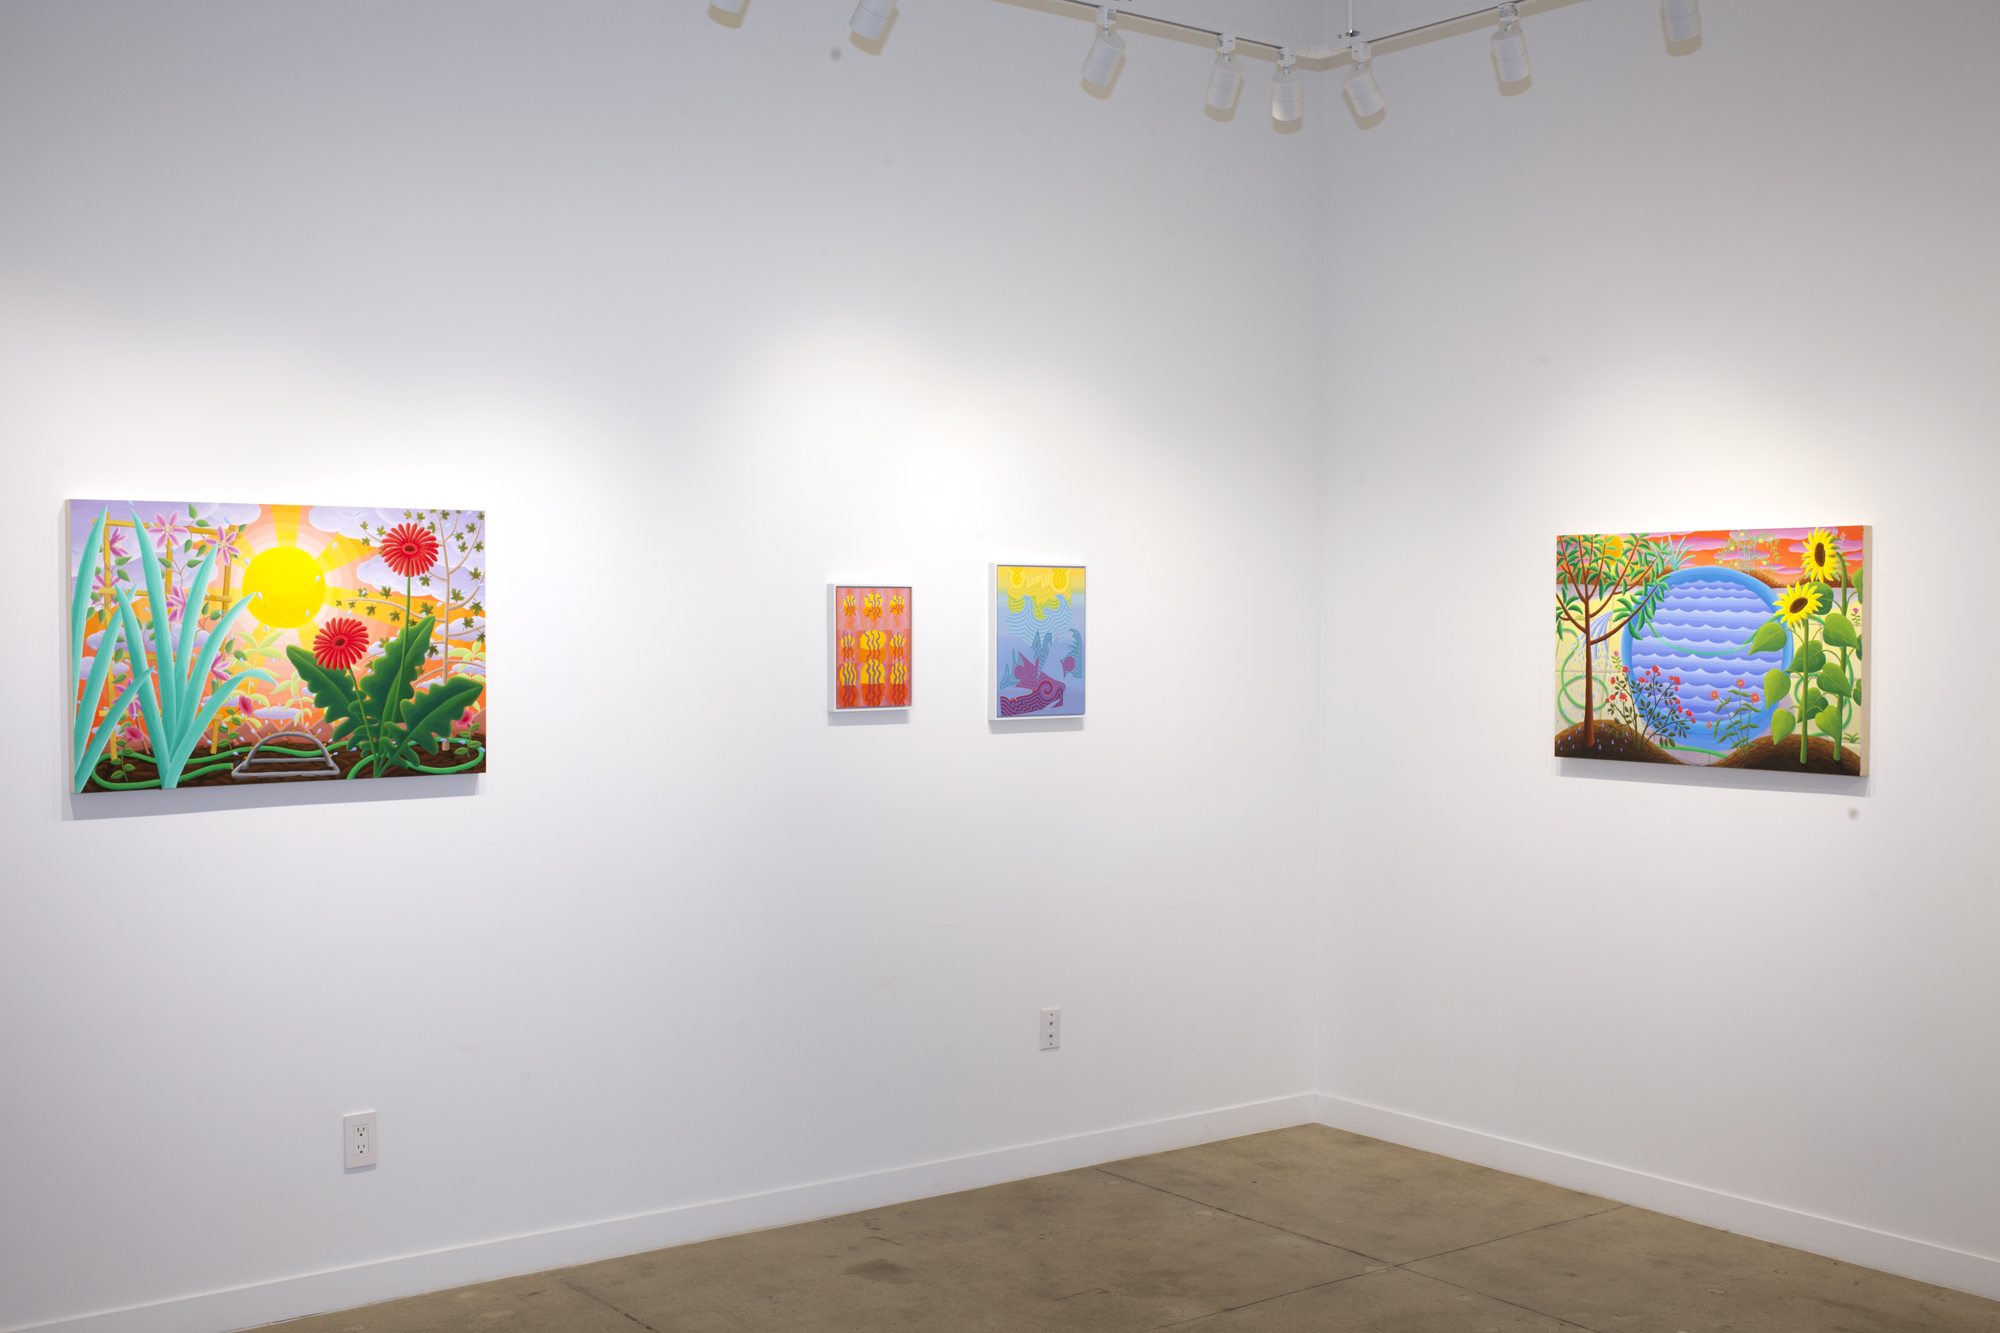 Left to right:  Amy Lincoln,  Sprinkler , 2018, acrylic on panel, 24 x 36 inches Caetlynn Booth,  Swamp Wiggle Study , 2017, oil on paper, 13 x 10 inches framed Caetlynn Booth,  Sunrise Study 5 , 2019, oil on paper, 17 x 13 inches framed Amy Lincoln,  Blue Plastic Pool , 2018, acrylic on panel, 24 x 36 inches